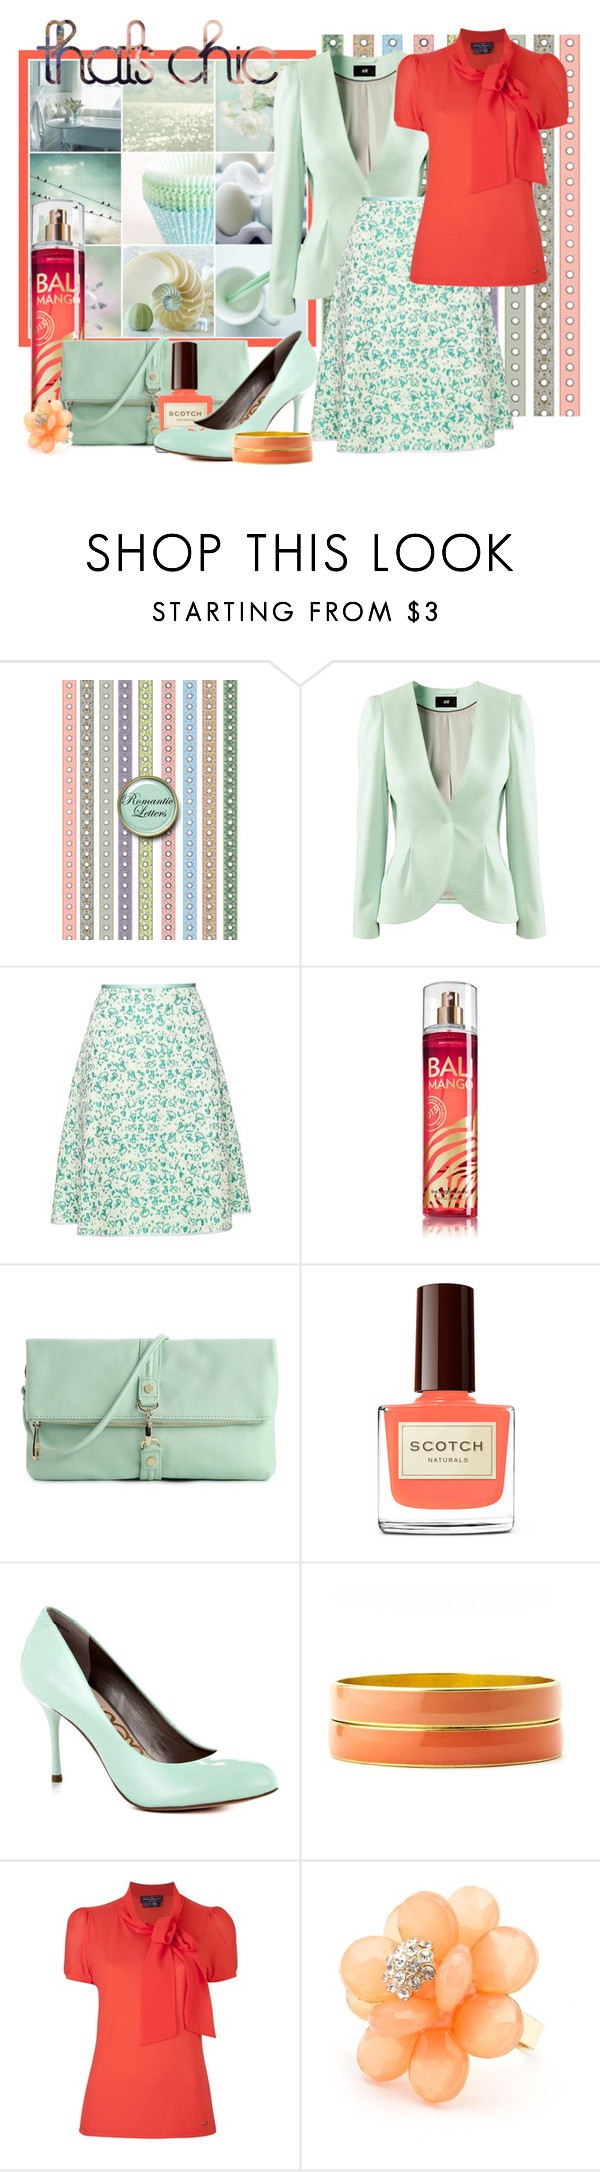 """""""Dare to be chic"""" by heather-peace ❤ liked on Polyvore featuring Shabby Chic, H&M, Giles, Steve Madden, Sam Edelman, Charlotte Russe and Salvatore Ferragamo"""